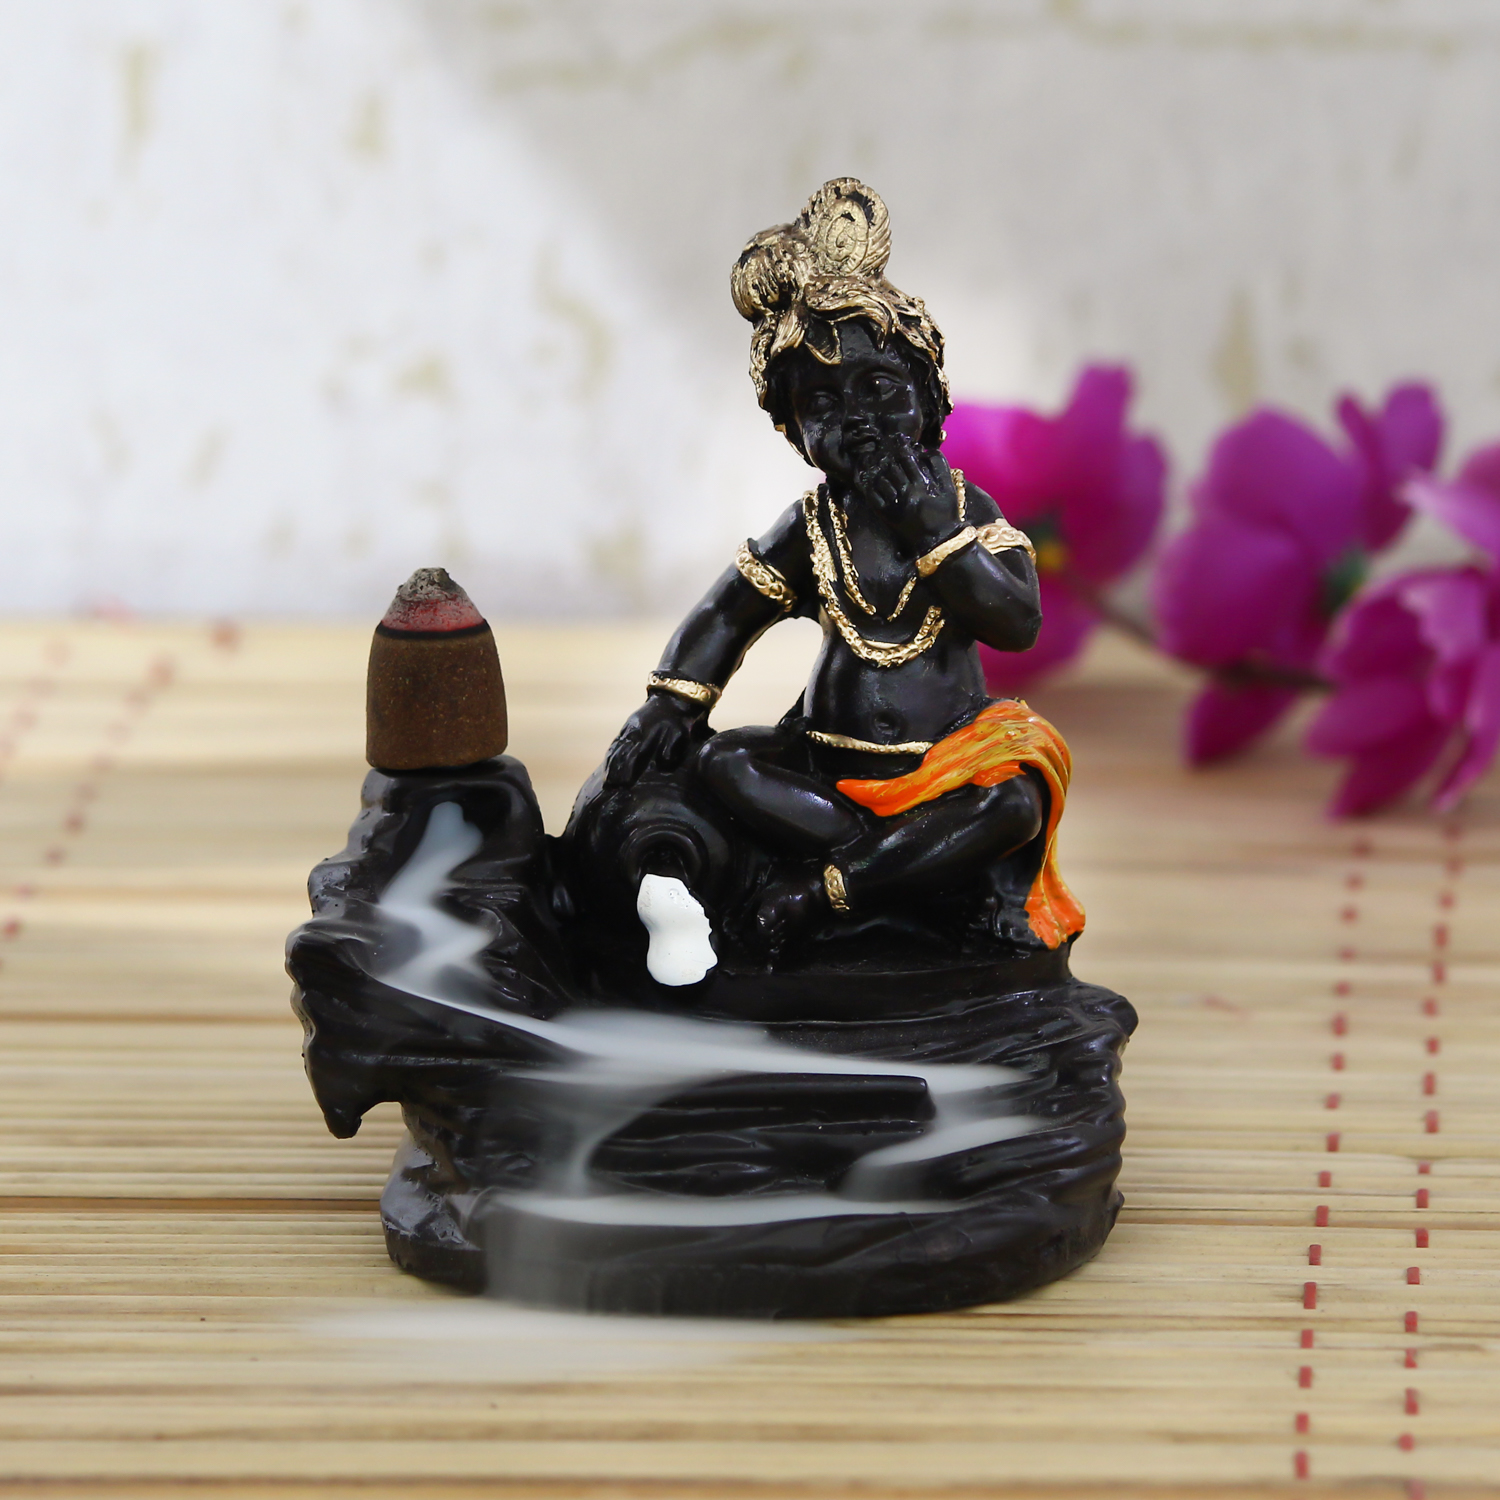 Lord Orange Krishna Smoke Backflow Cone Incense Holder Decorative Showpiece with 10 free Smoke Backflow Scented Cone Incenses Indian Home Decor